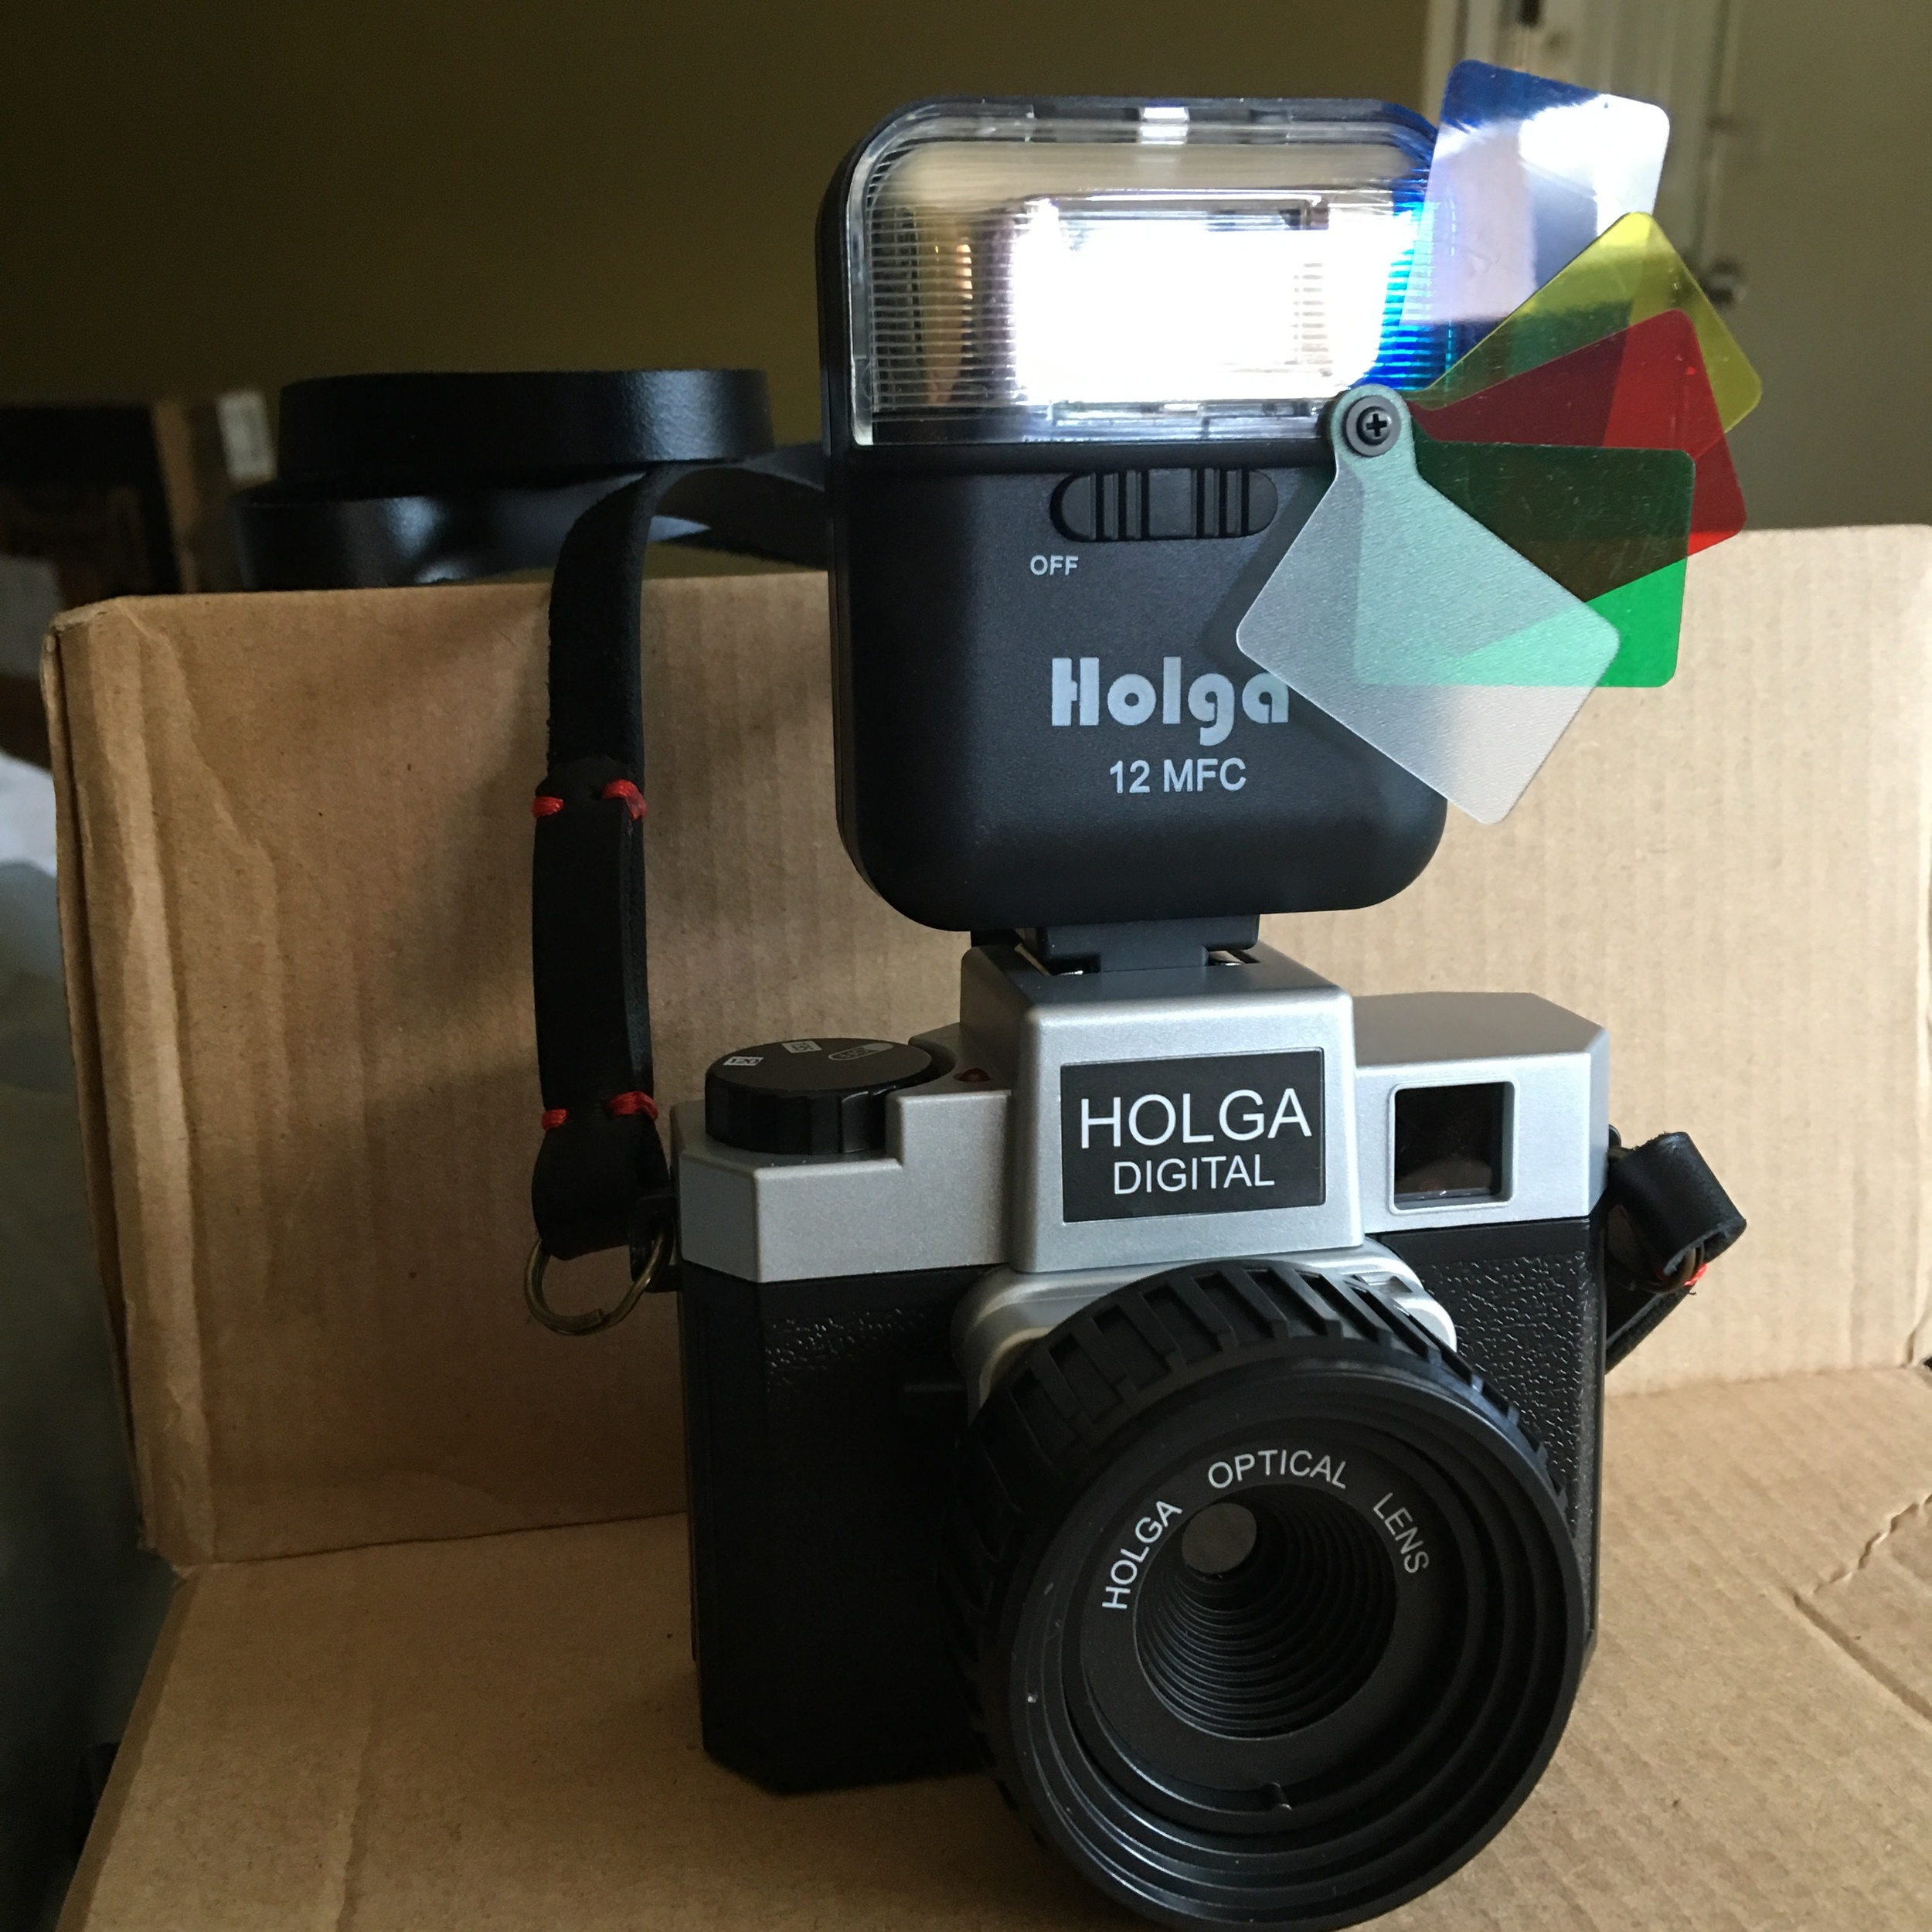 The Holga Digital is as low-tech as a digital camera can get